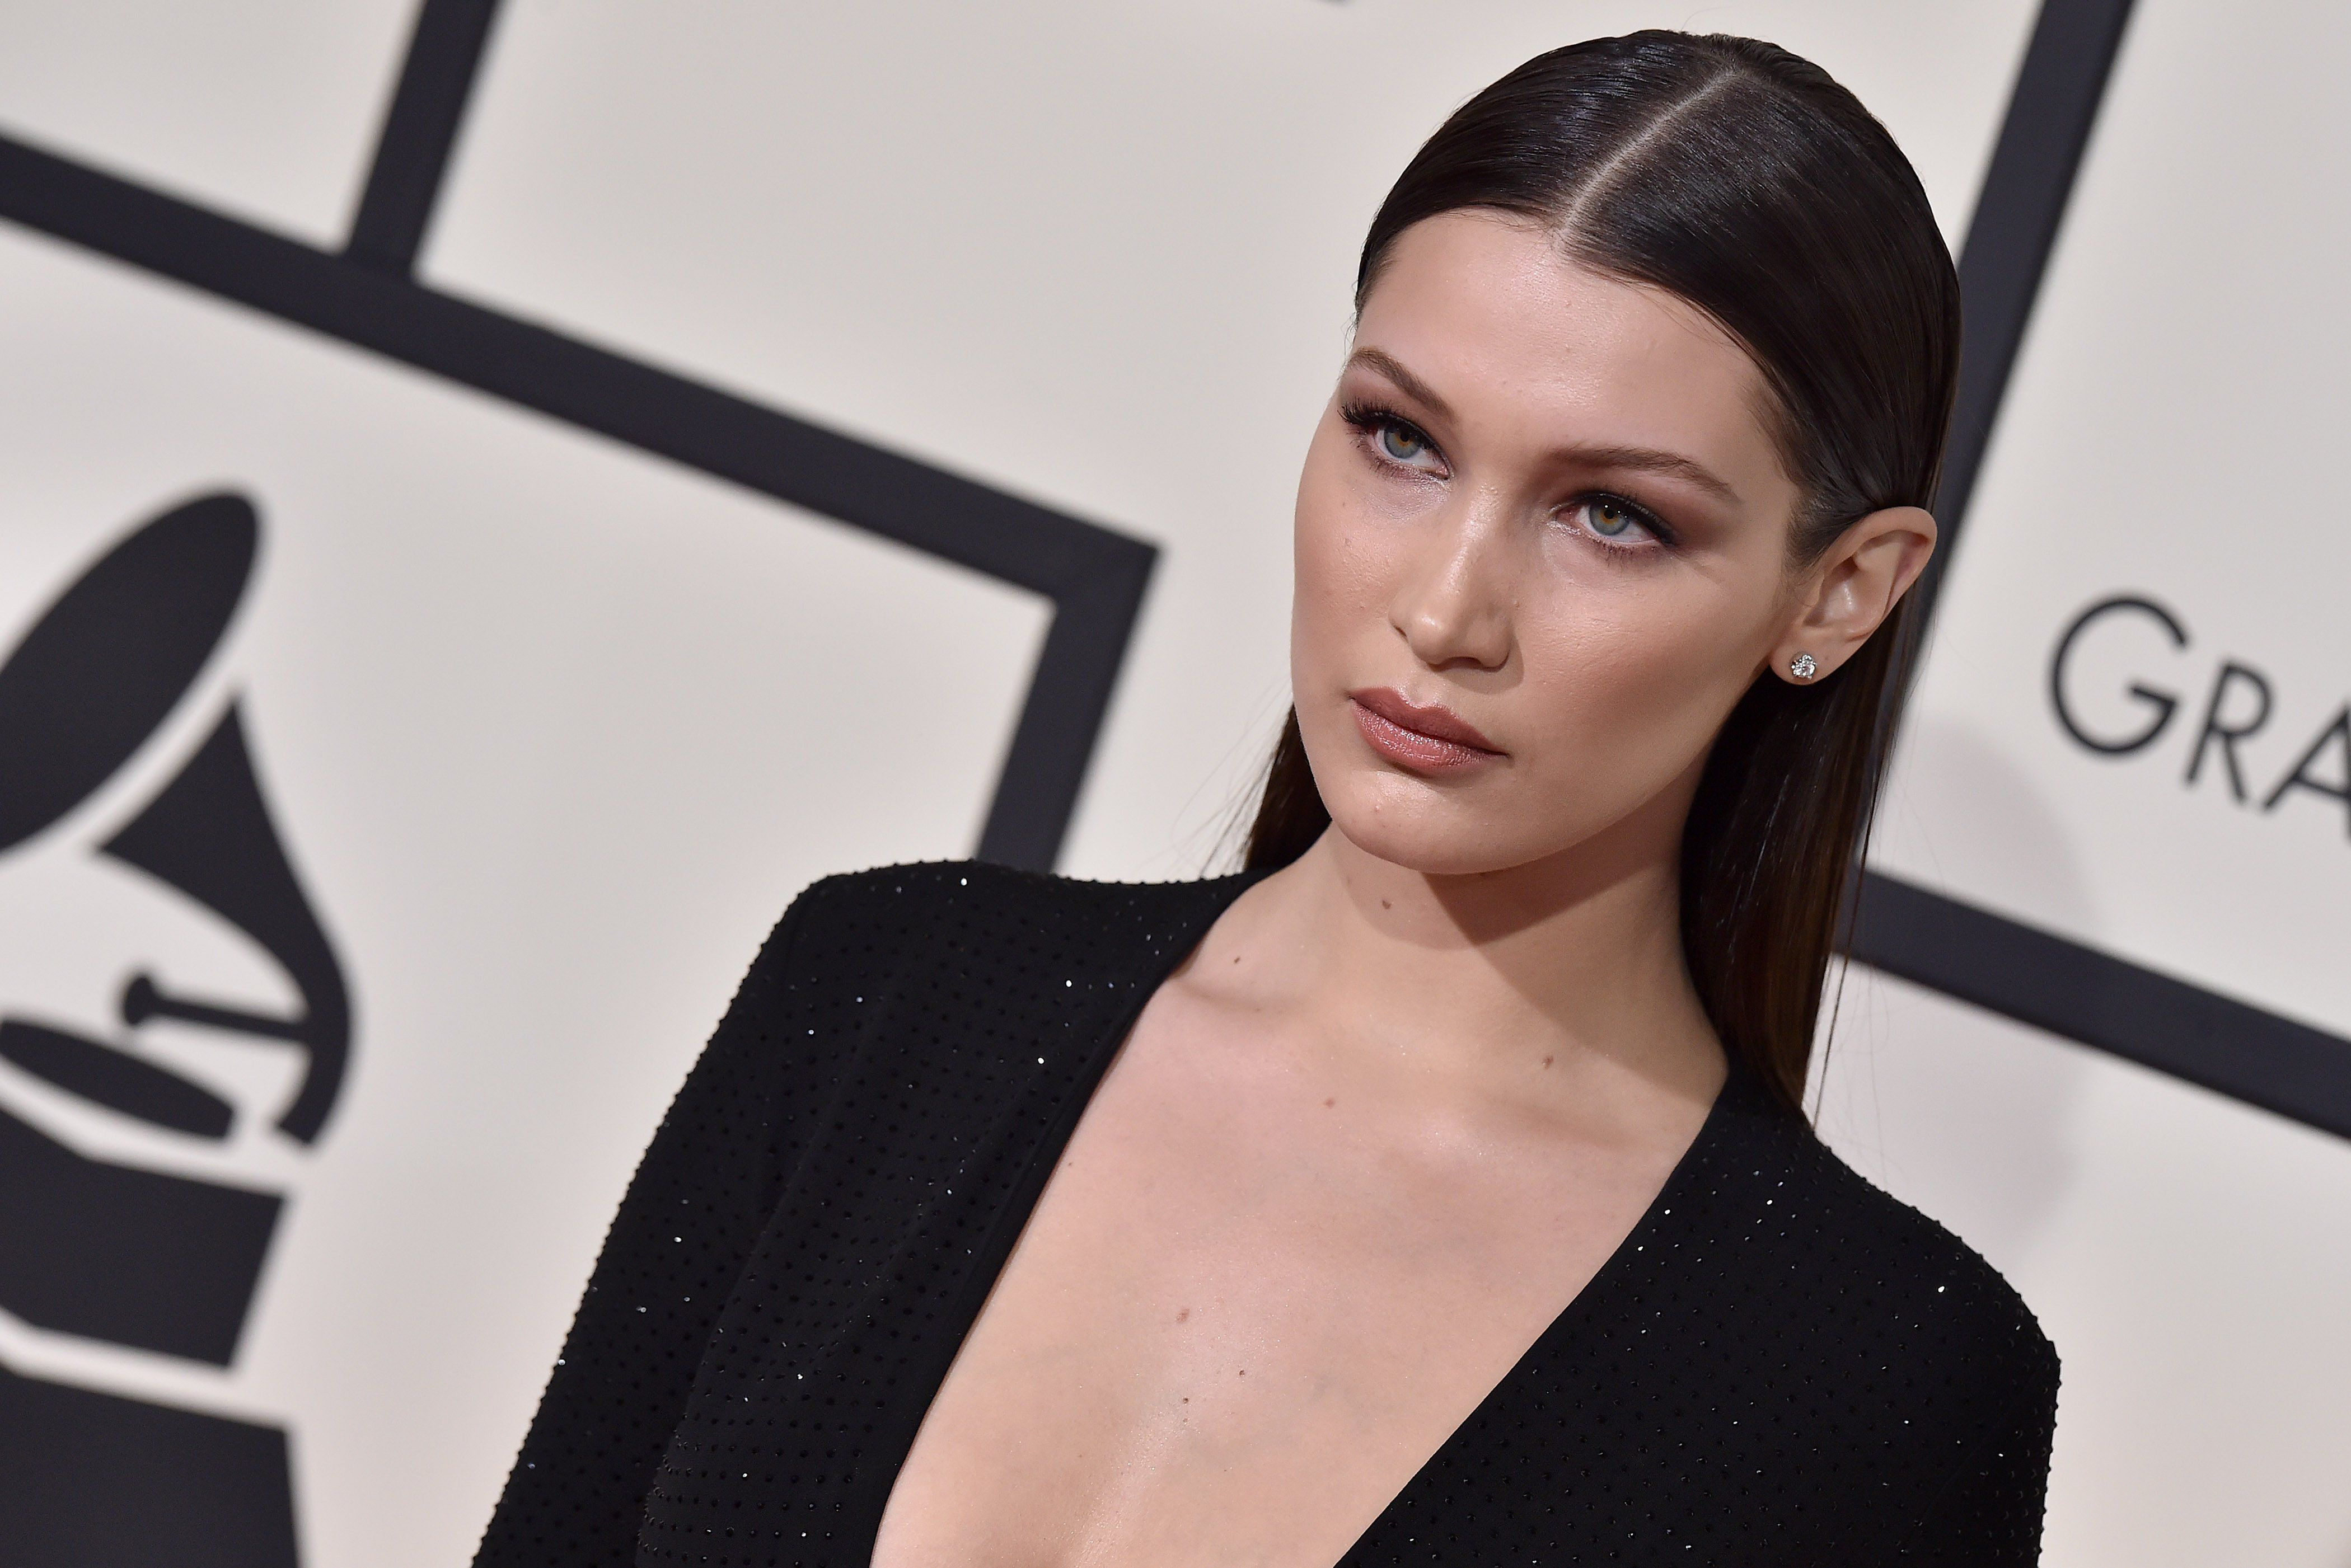 LOS ANGELES, CA - FEBRUARY 15: Model Bella Hadid arrives at The 58th GRAMMY Awards at Staples Center on February 15, 2016 in Los Angeles, California. (Photo by Axelle/Bauer-Griffin/FilmMagic)